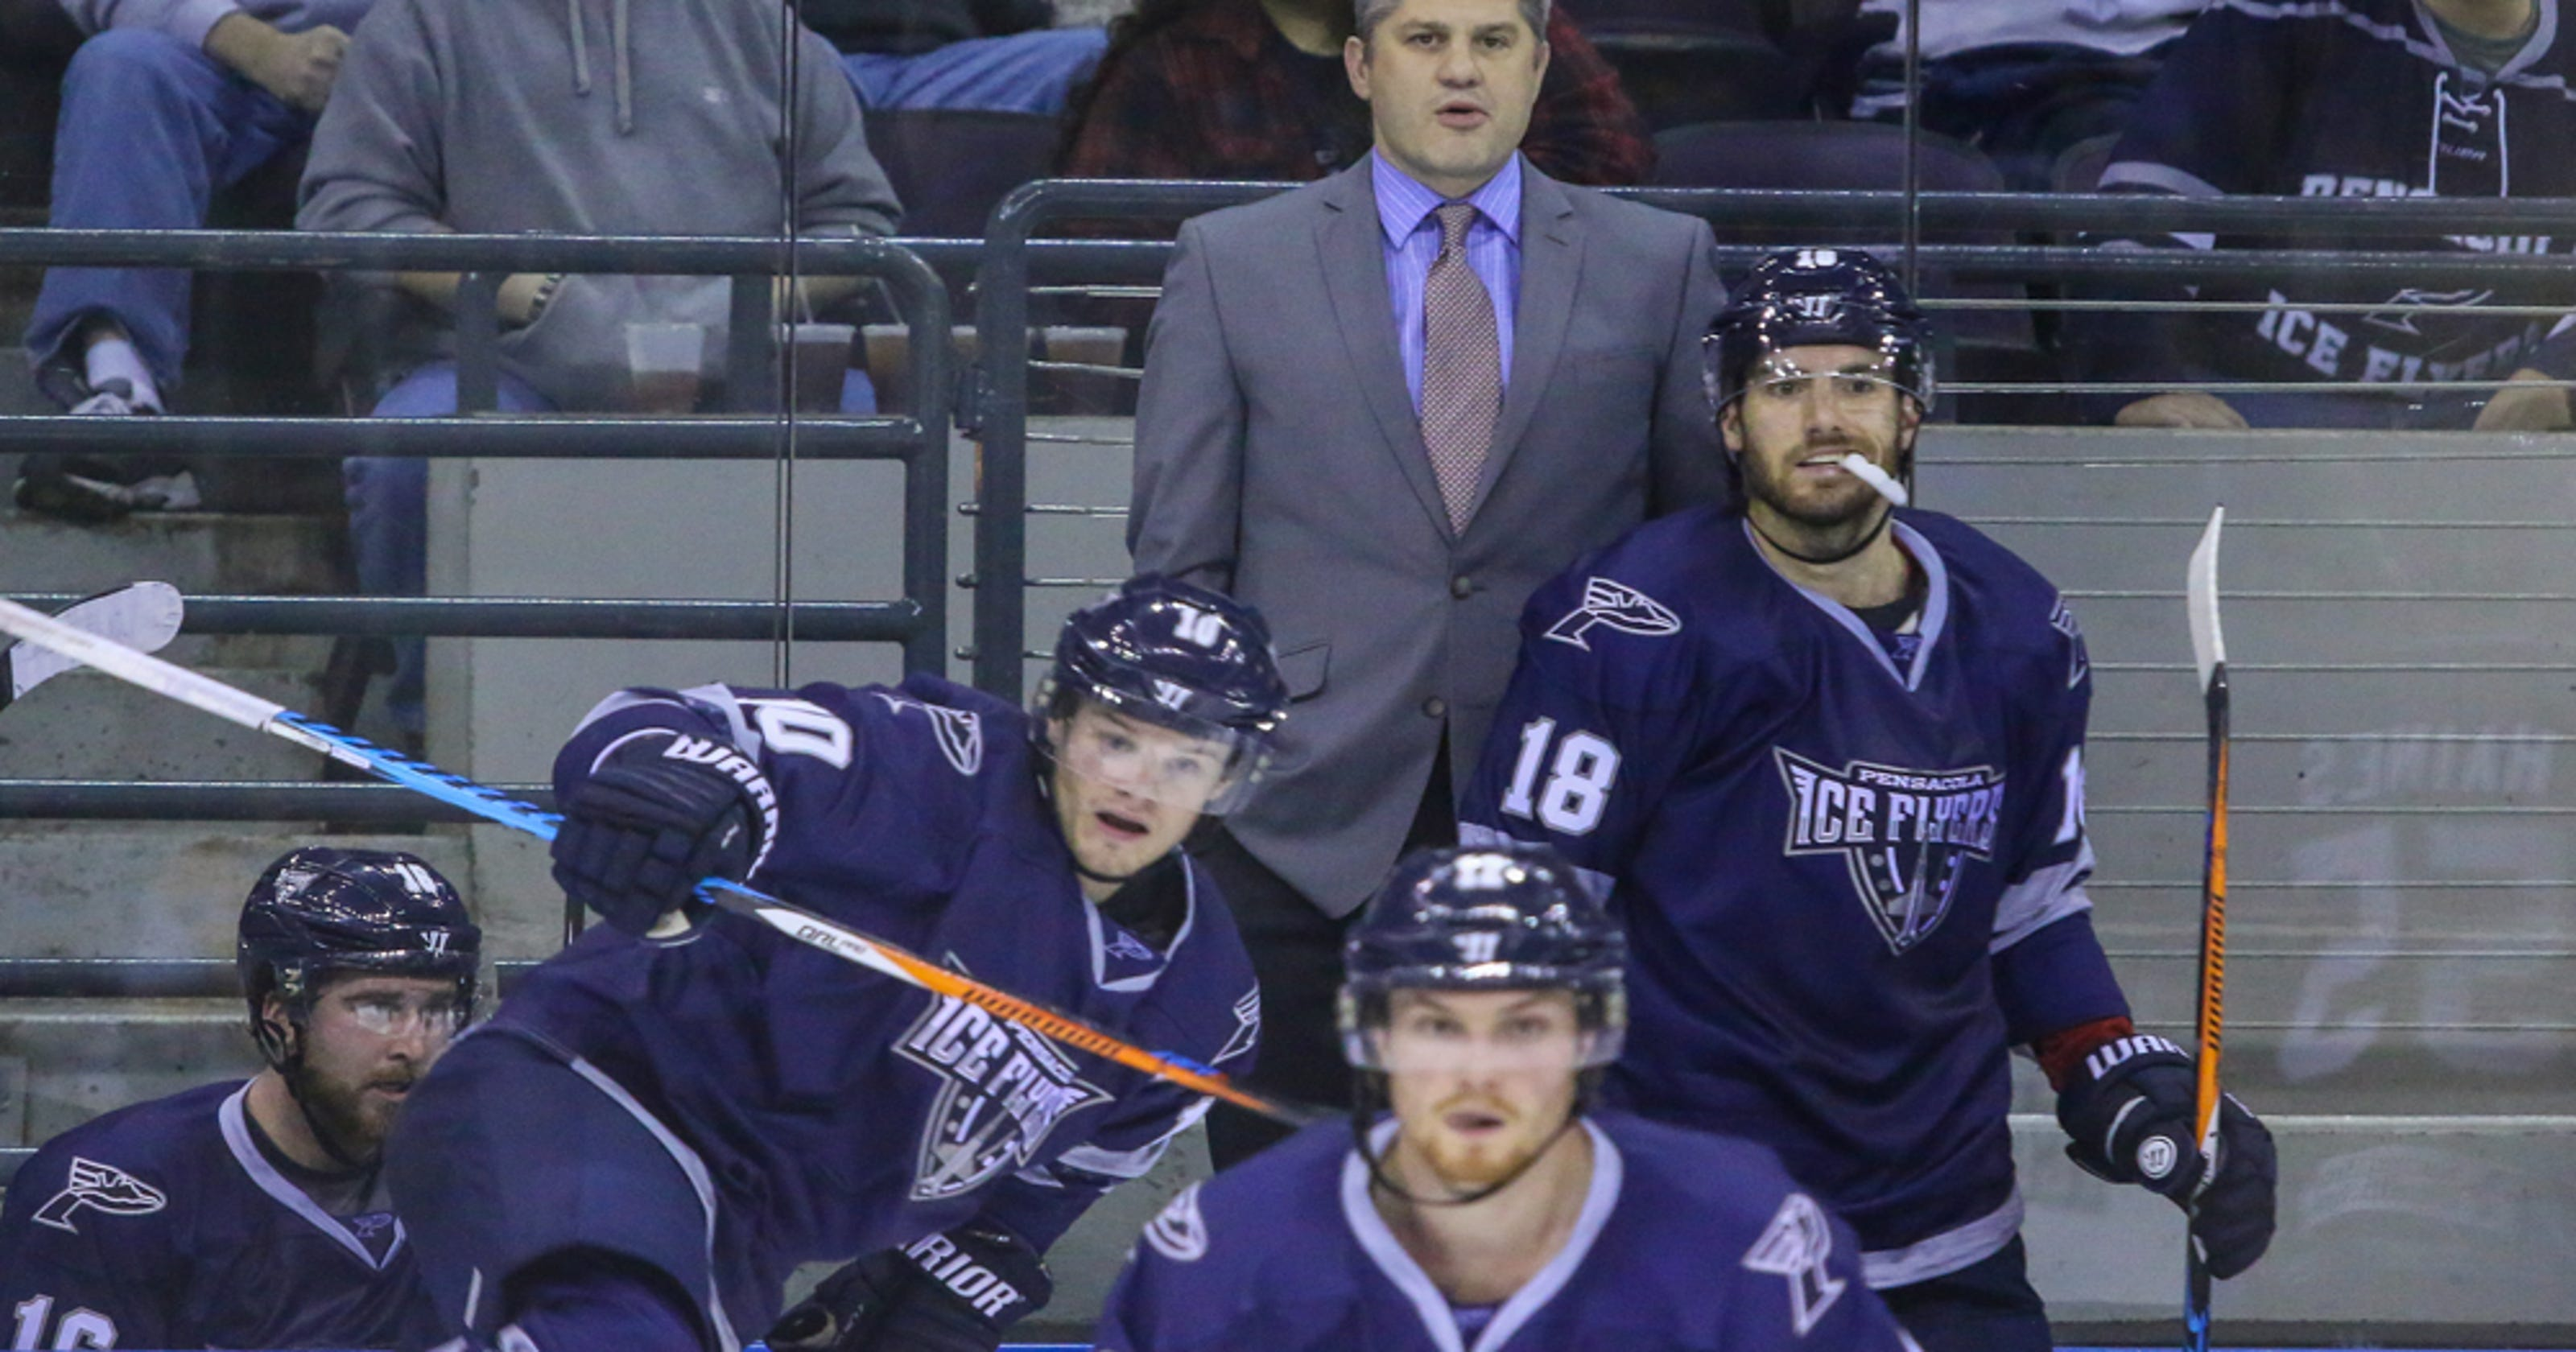 Pensacola Ice Flyers lose in overtime shootout against Knoxville 56c5c7184